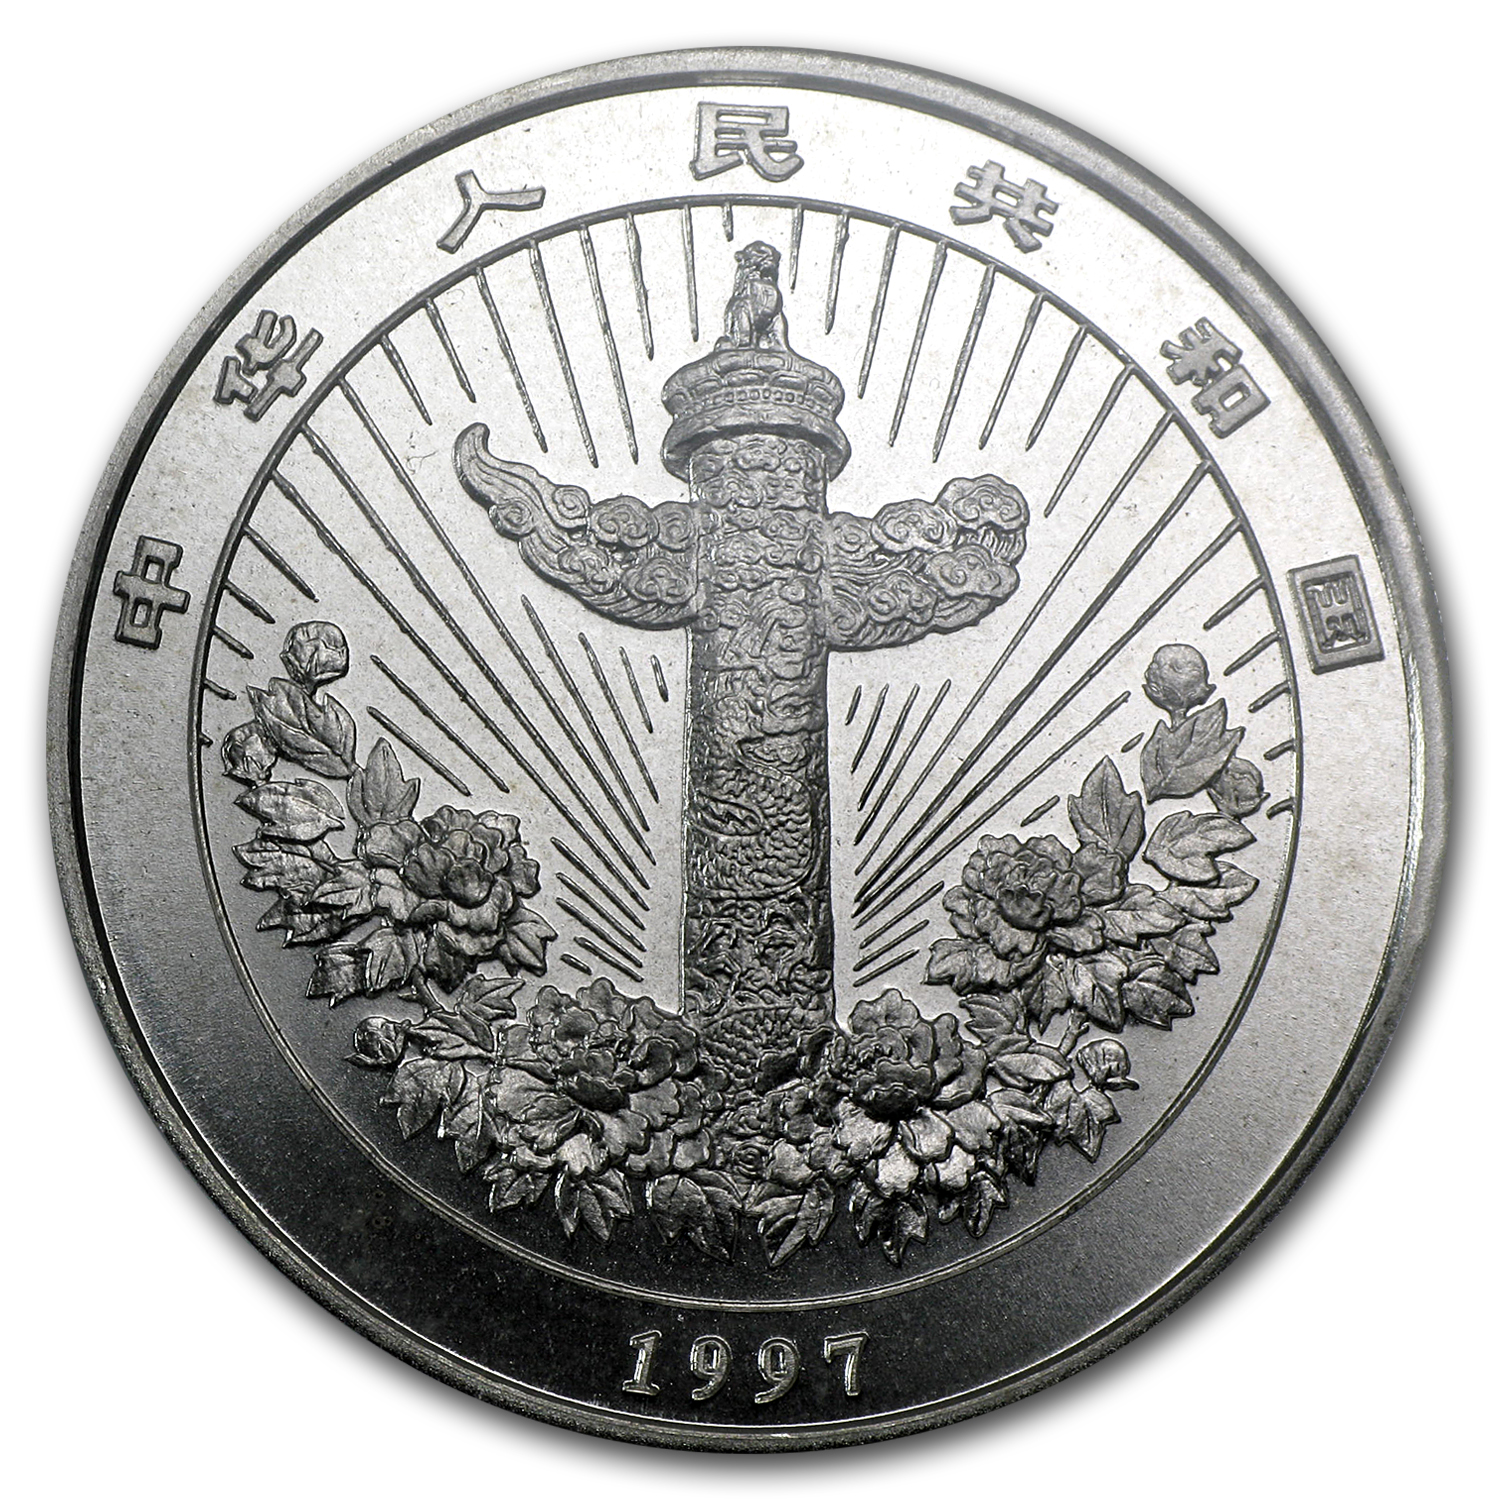 China 1997 10 Yuan 2oz Silver Coin of Auspicious Matter NGC MS-68